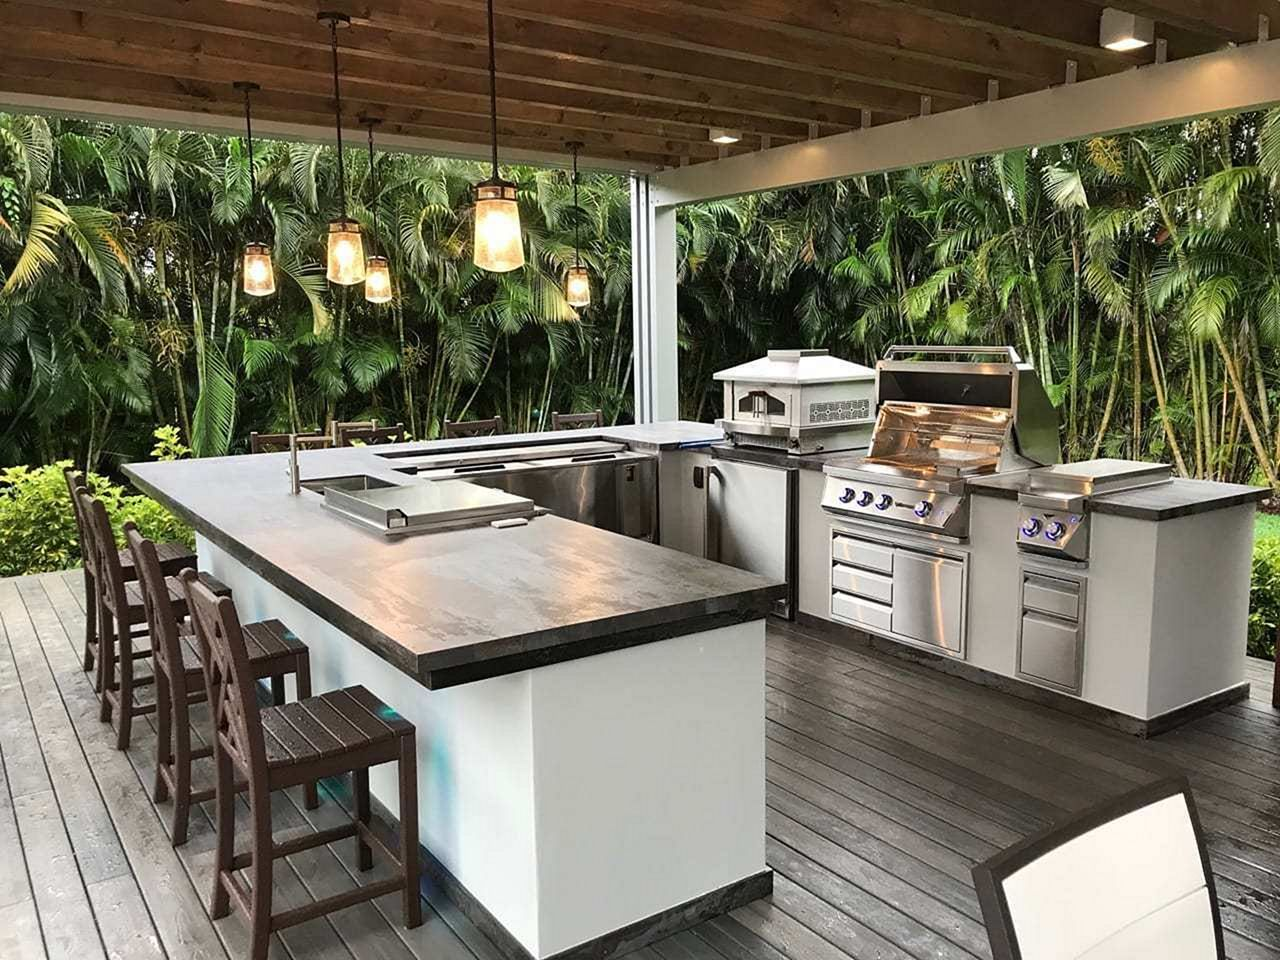 pin by popular trends on outdoor space inspirations outdoor kitchen design kitchen design on kitchen decor trends id=50053